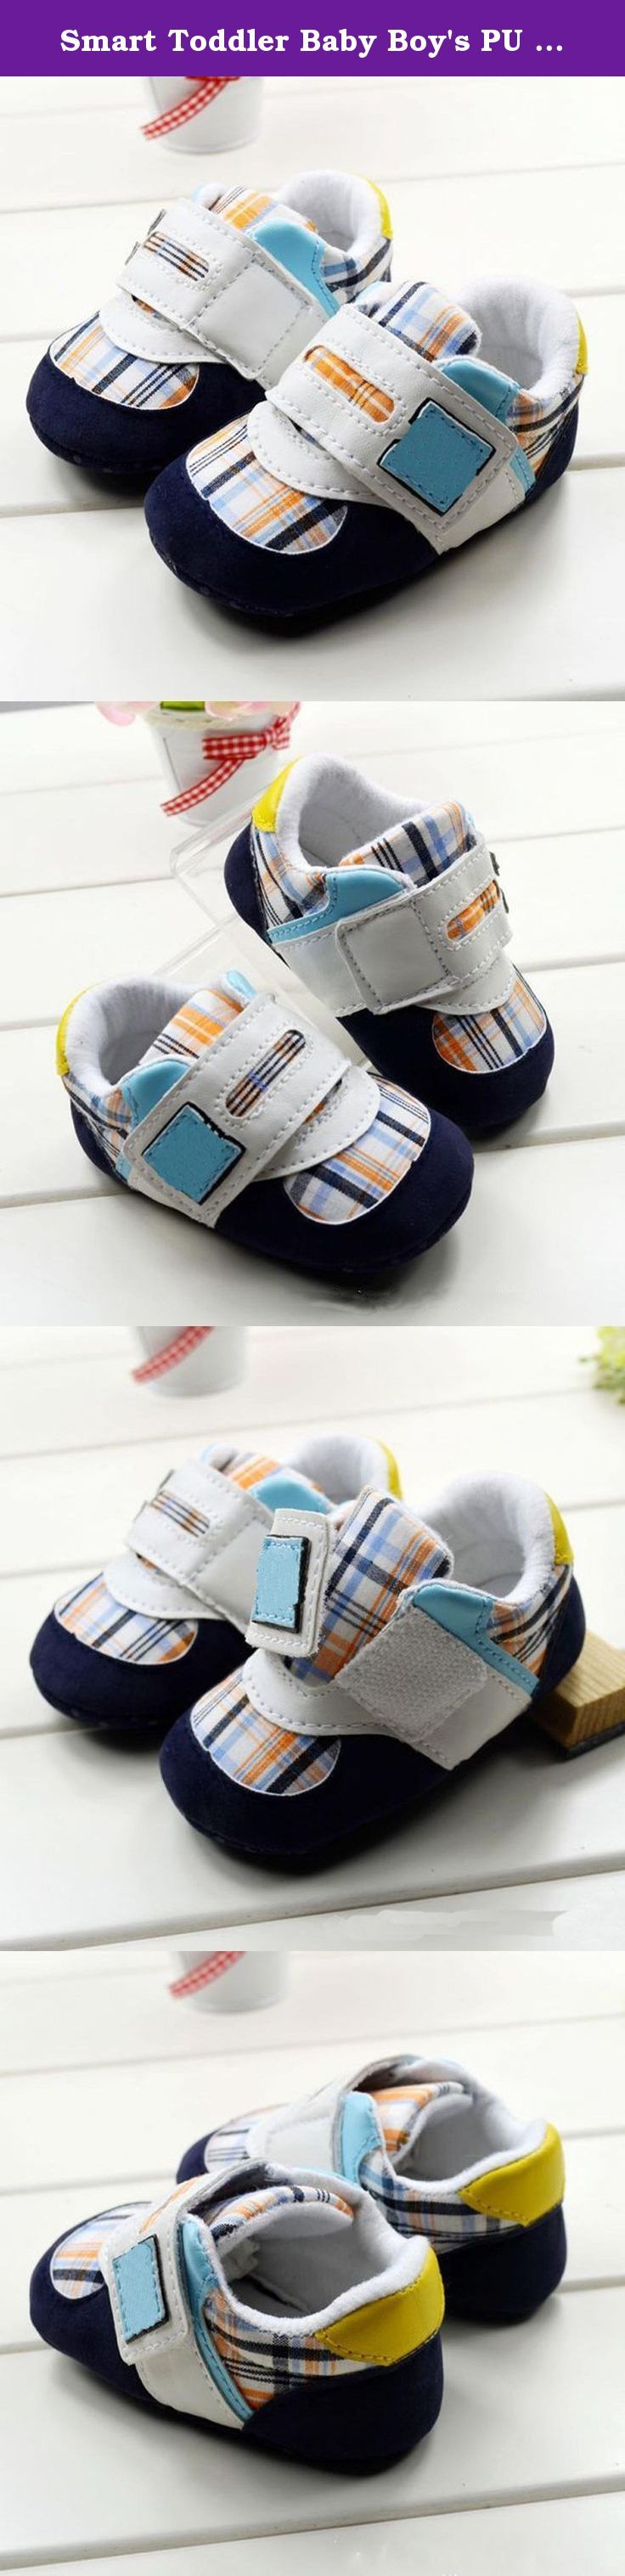 """Smart Toddler Baby Boy's PU Leather Plaid Crib Prewalker Shoes 0-18M. Smart Infant Baby Boys White PU Leather Sport First Walker Shoes 0-18M Material: Cotton Blend+PU Leather Style: Daily Color: Red,Dark Blue Size: Fit For 0-18 Months Baby Net Weight: (Approx) 60-70g Item Includes:1 Pair Baby Sport Shoes 1 inch =2.54cm Asian Size: S--Recommend Age: 0-6 Months,Sole Length:11.3cm/4.44"""", Sole Width:5.5cm/2.16"""",Shoes Hight:3.5cm / 1.37"""" M--Recommend Age:6-12 Months,Sole Length:12.2cm / 4.80""""..."""